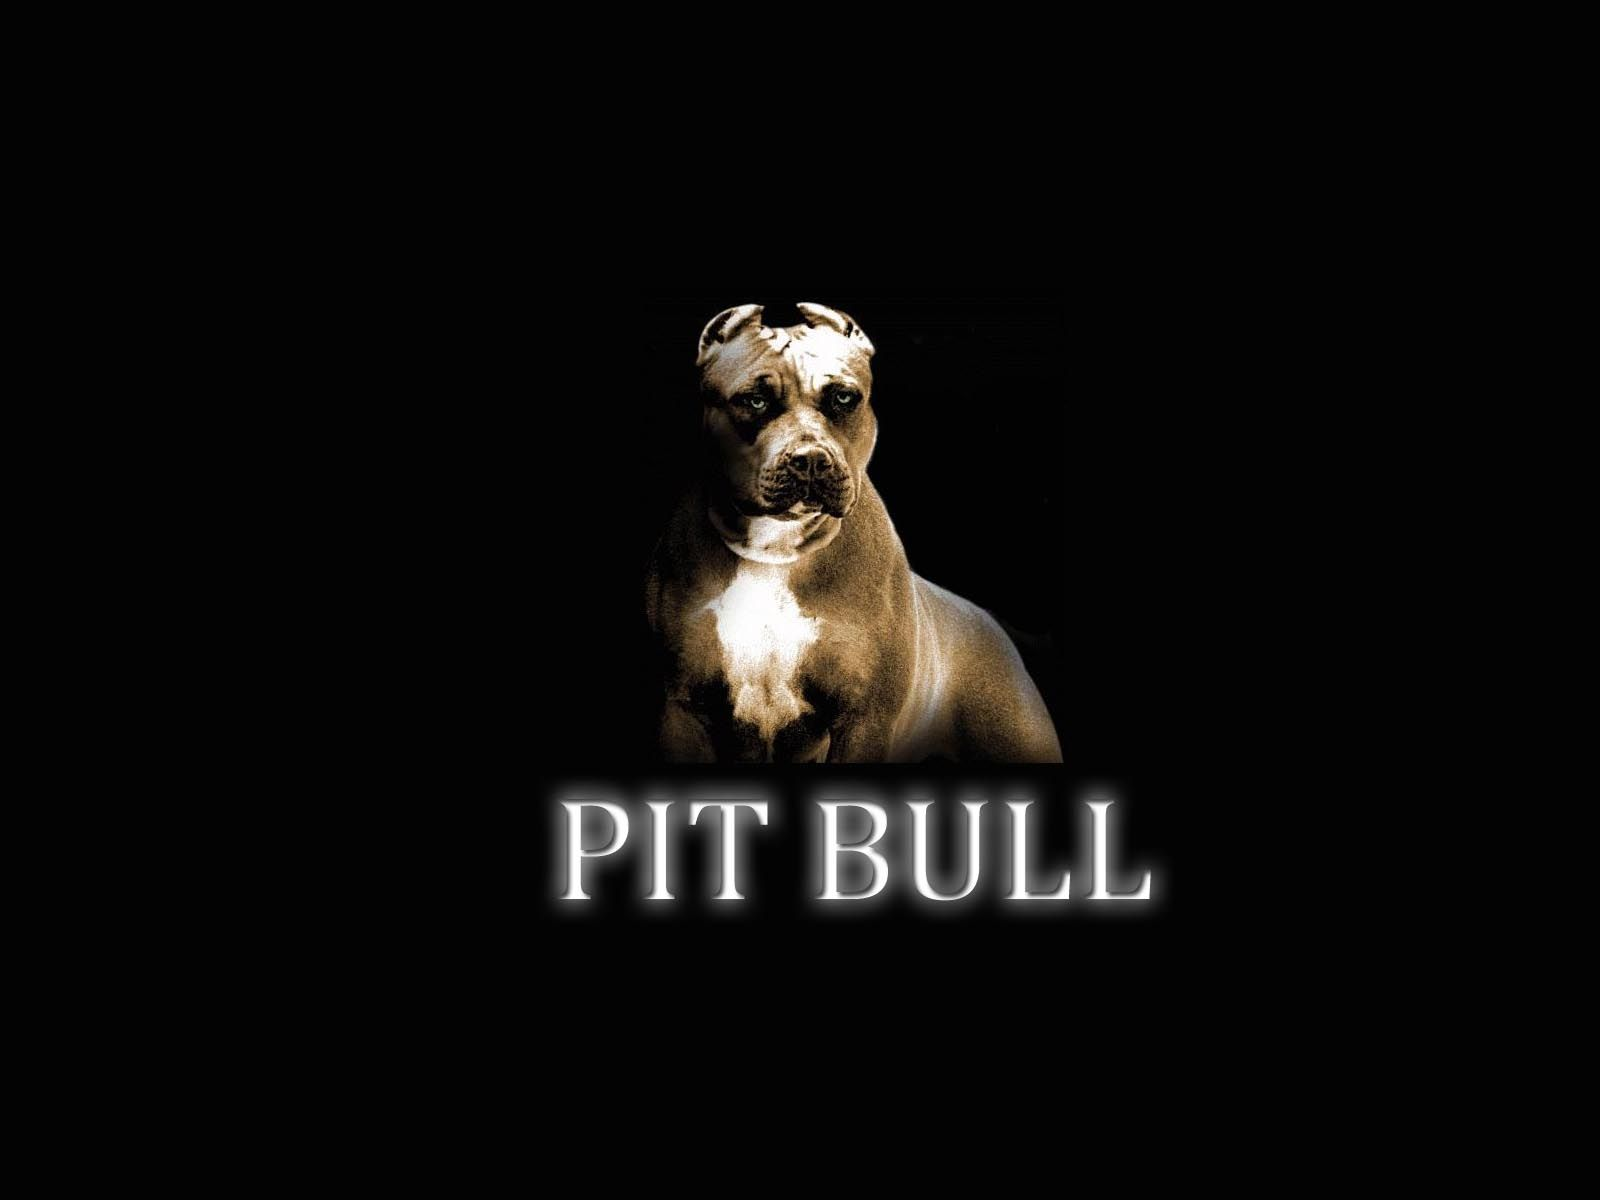 Pic New Posts Wallpaper Apbt Pitbulls Dog Wallpaper Dogs Pitbulls